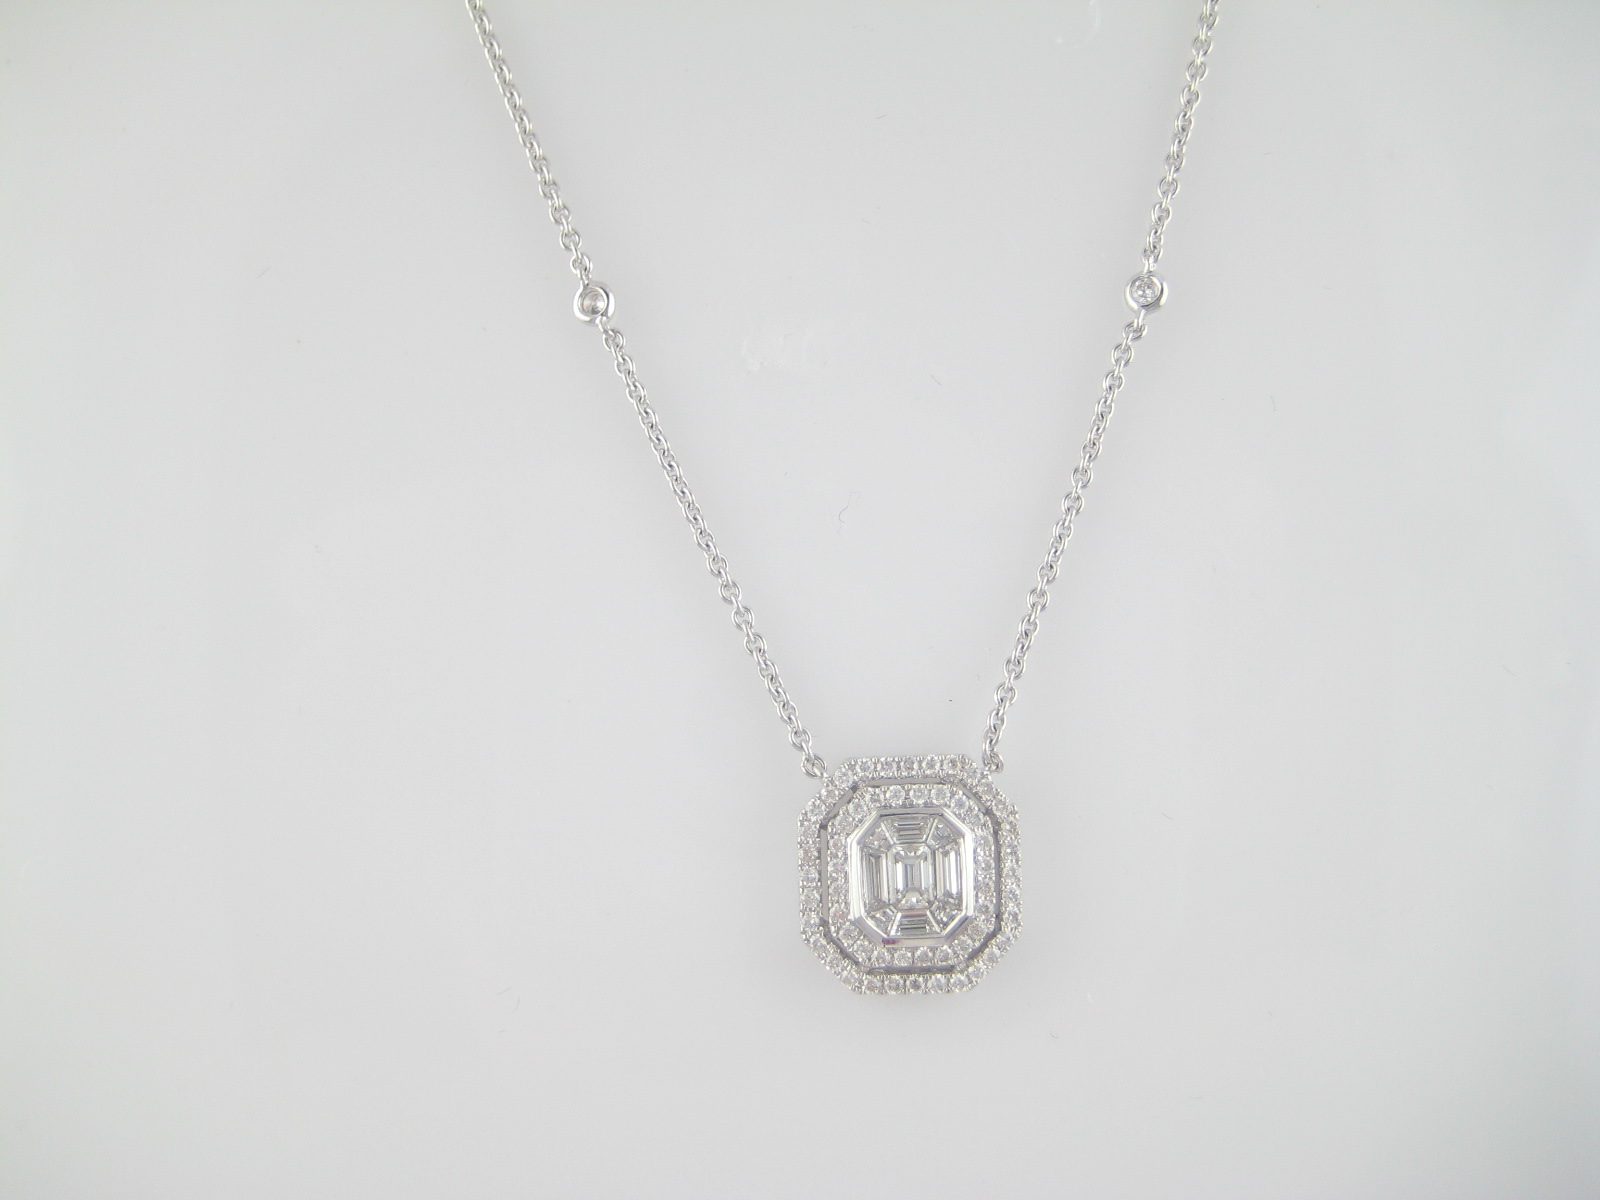 18K Ladies Diamond Pendant